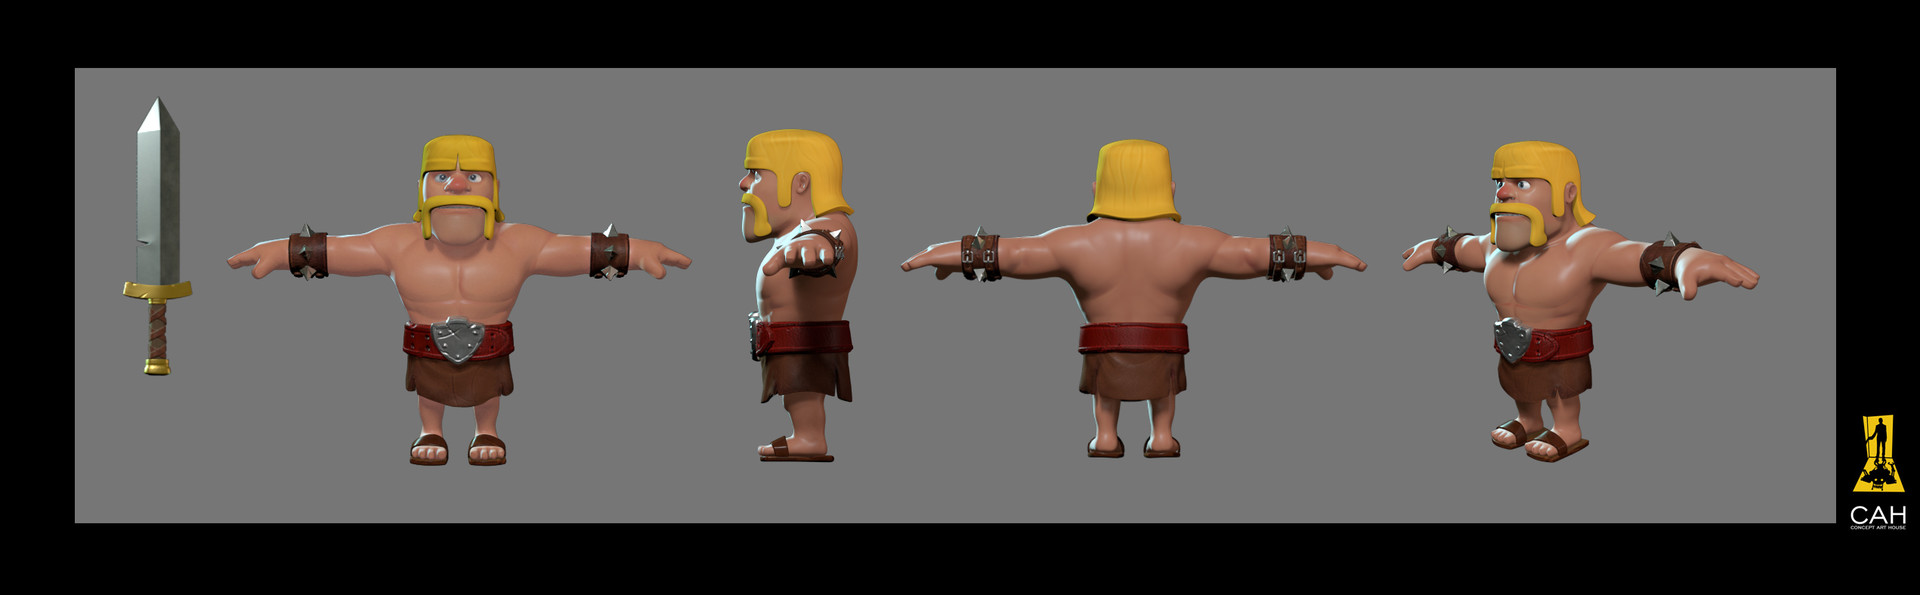 Artstation 3d models for clash of clans super bowl commercial barbarian publicscrutiny Image collections